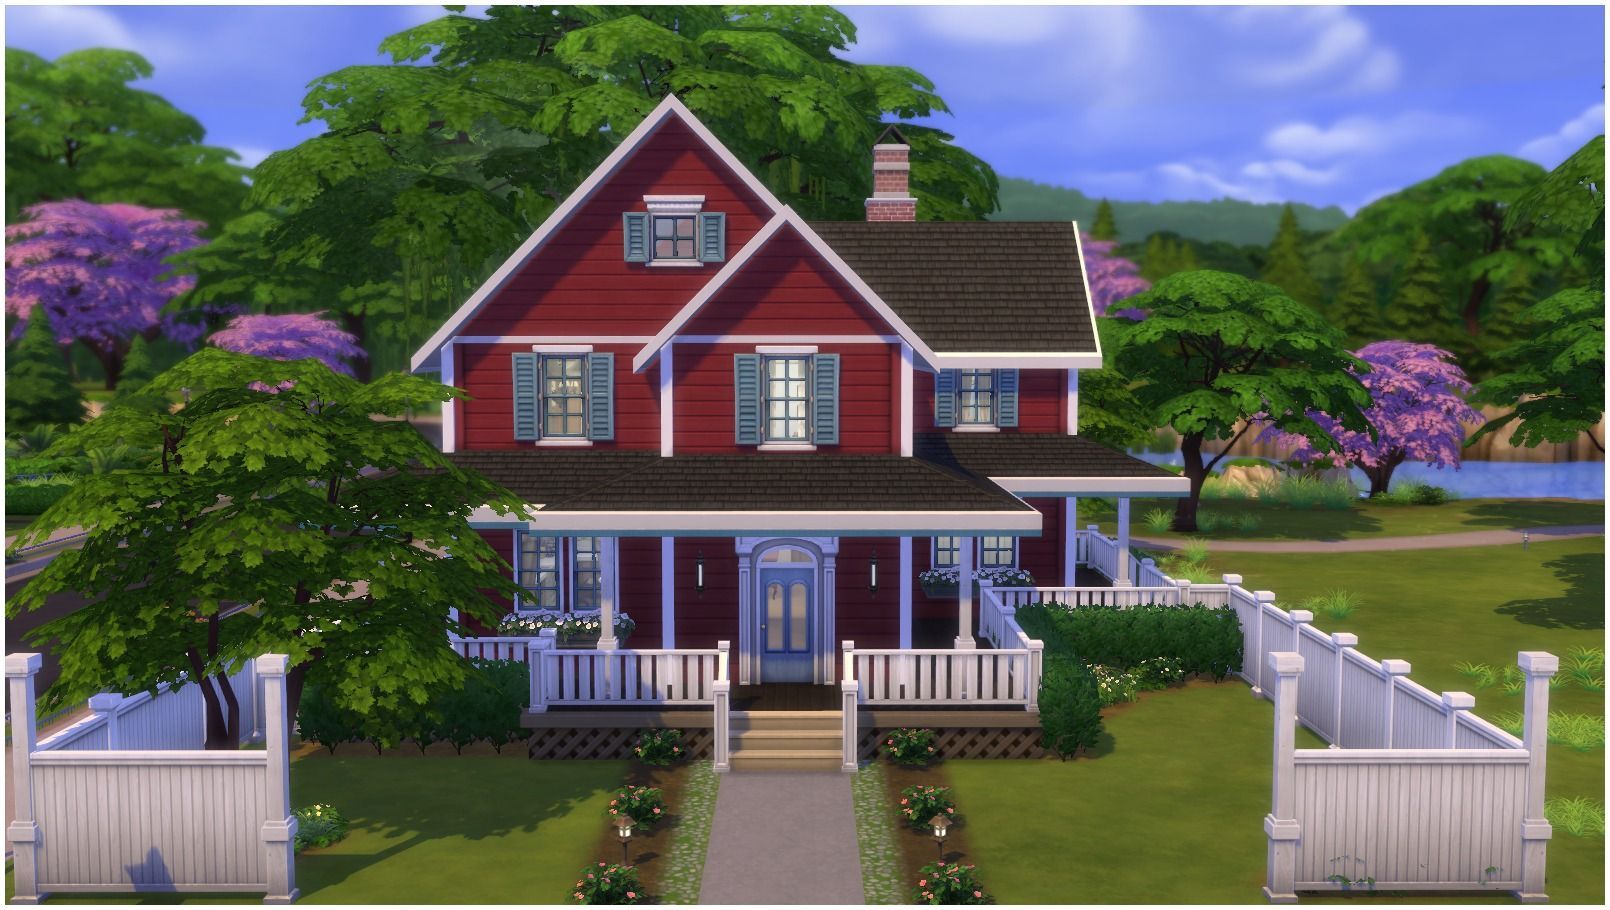 Mod The Sims Family Farmhouse Sims House Plans Sims 4 House Building Sims House